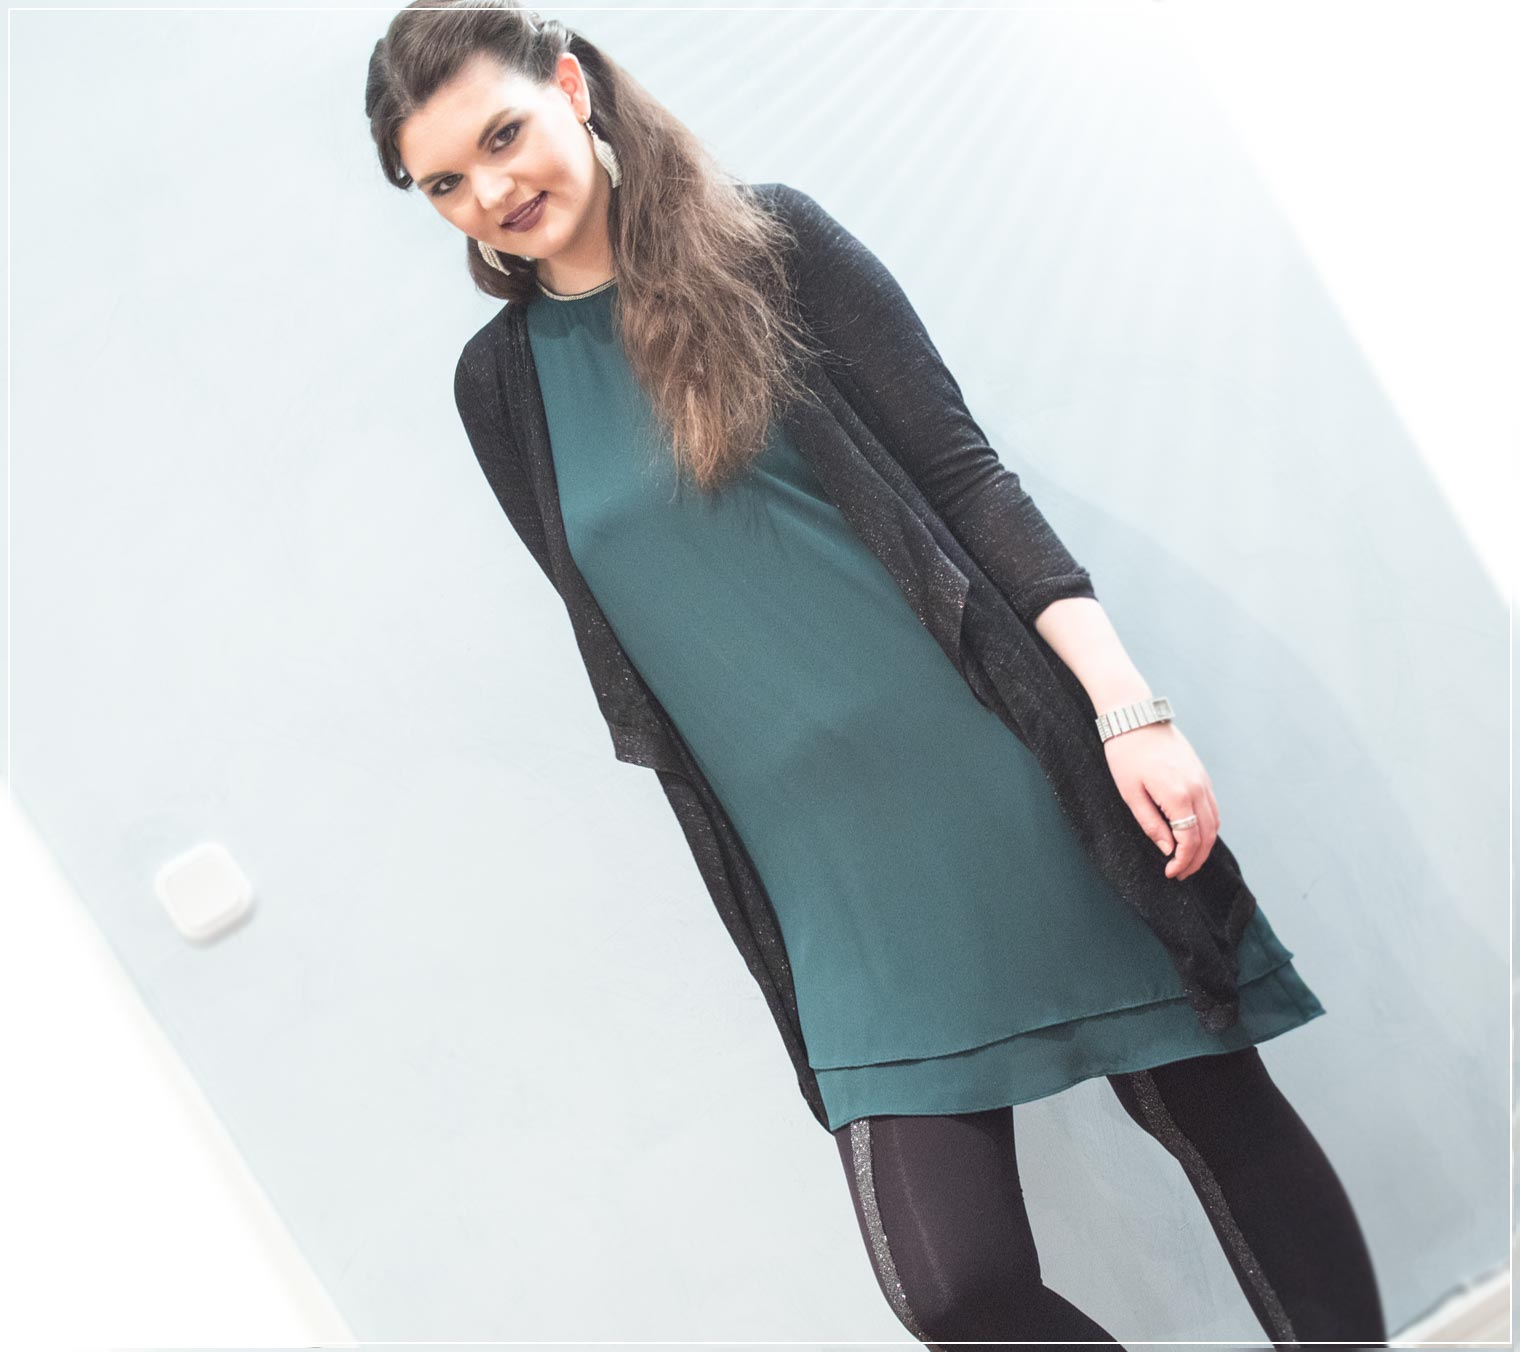 seidiges Kleid mit glitzernder Strickjacke